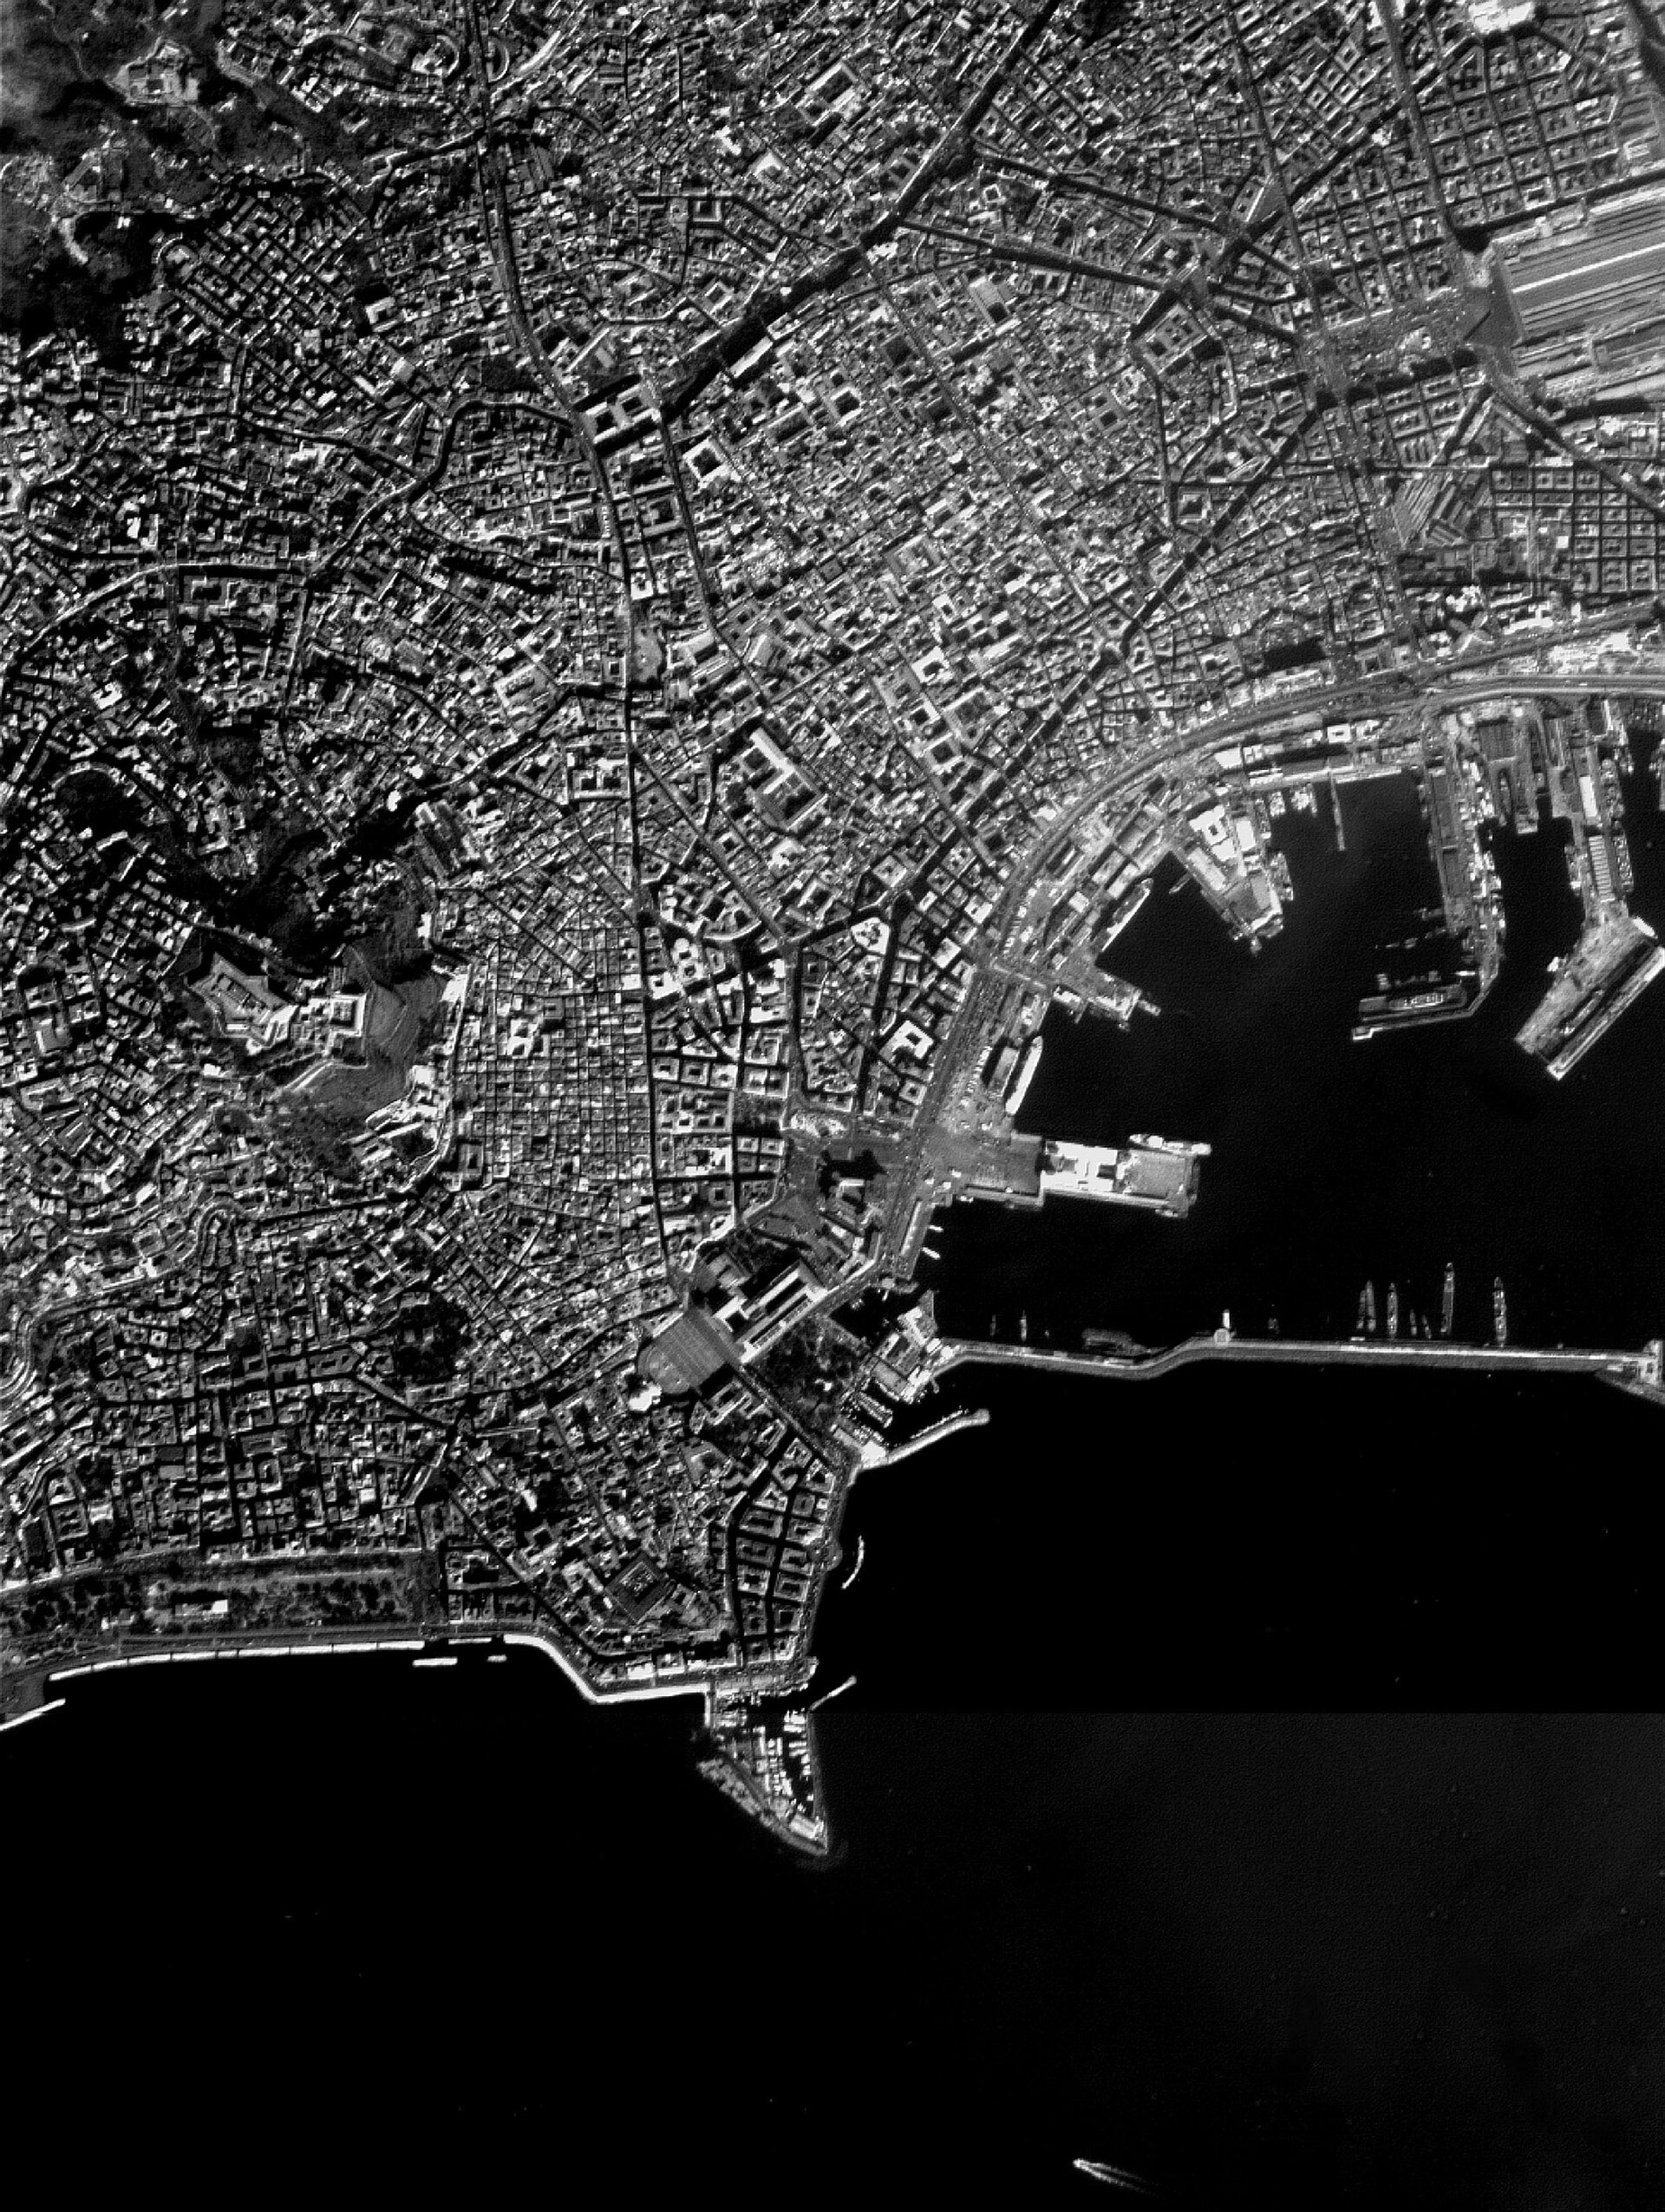 Naples, Italy - HRC image - 19 February 2003